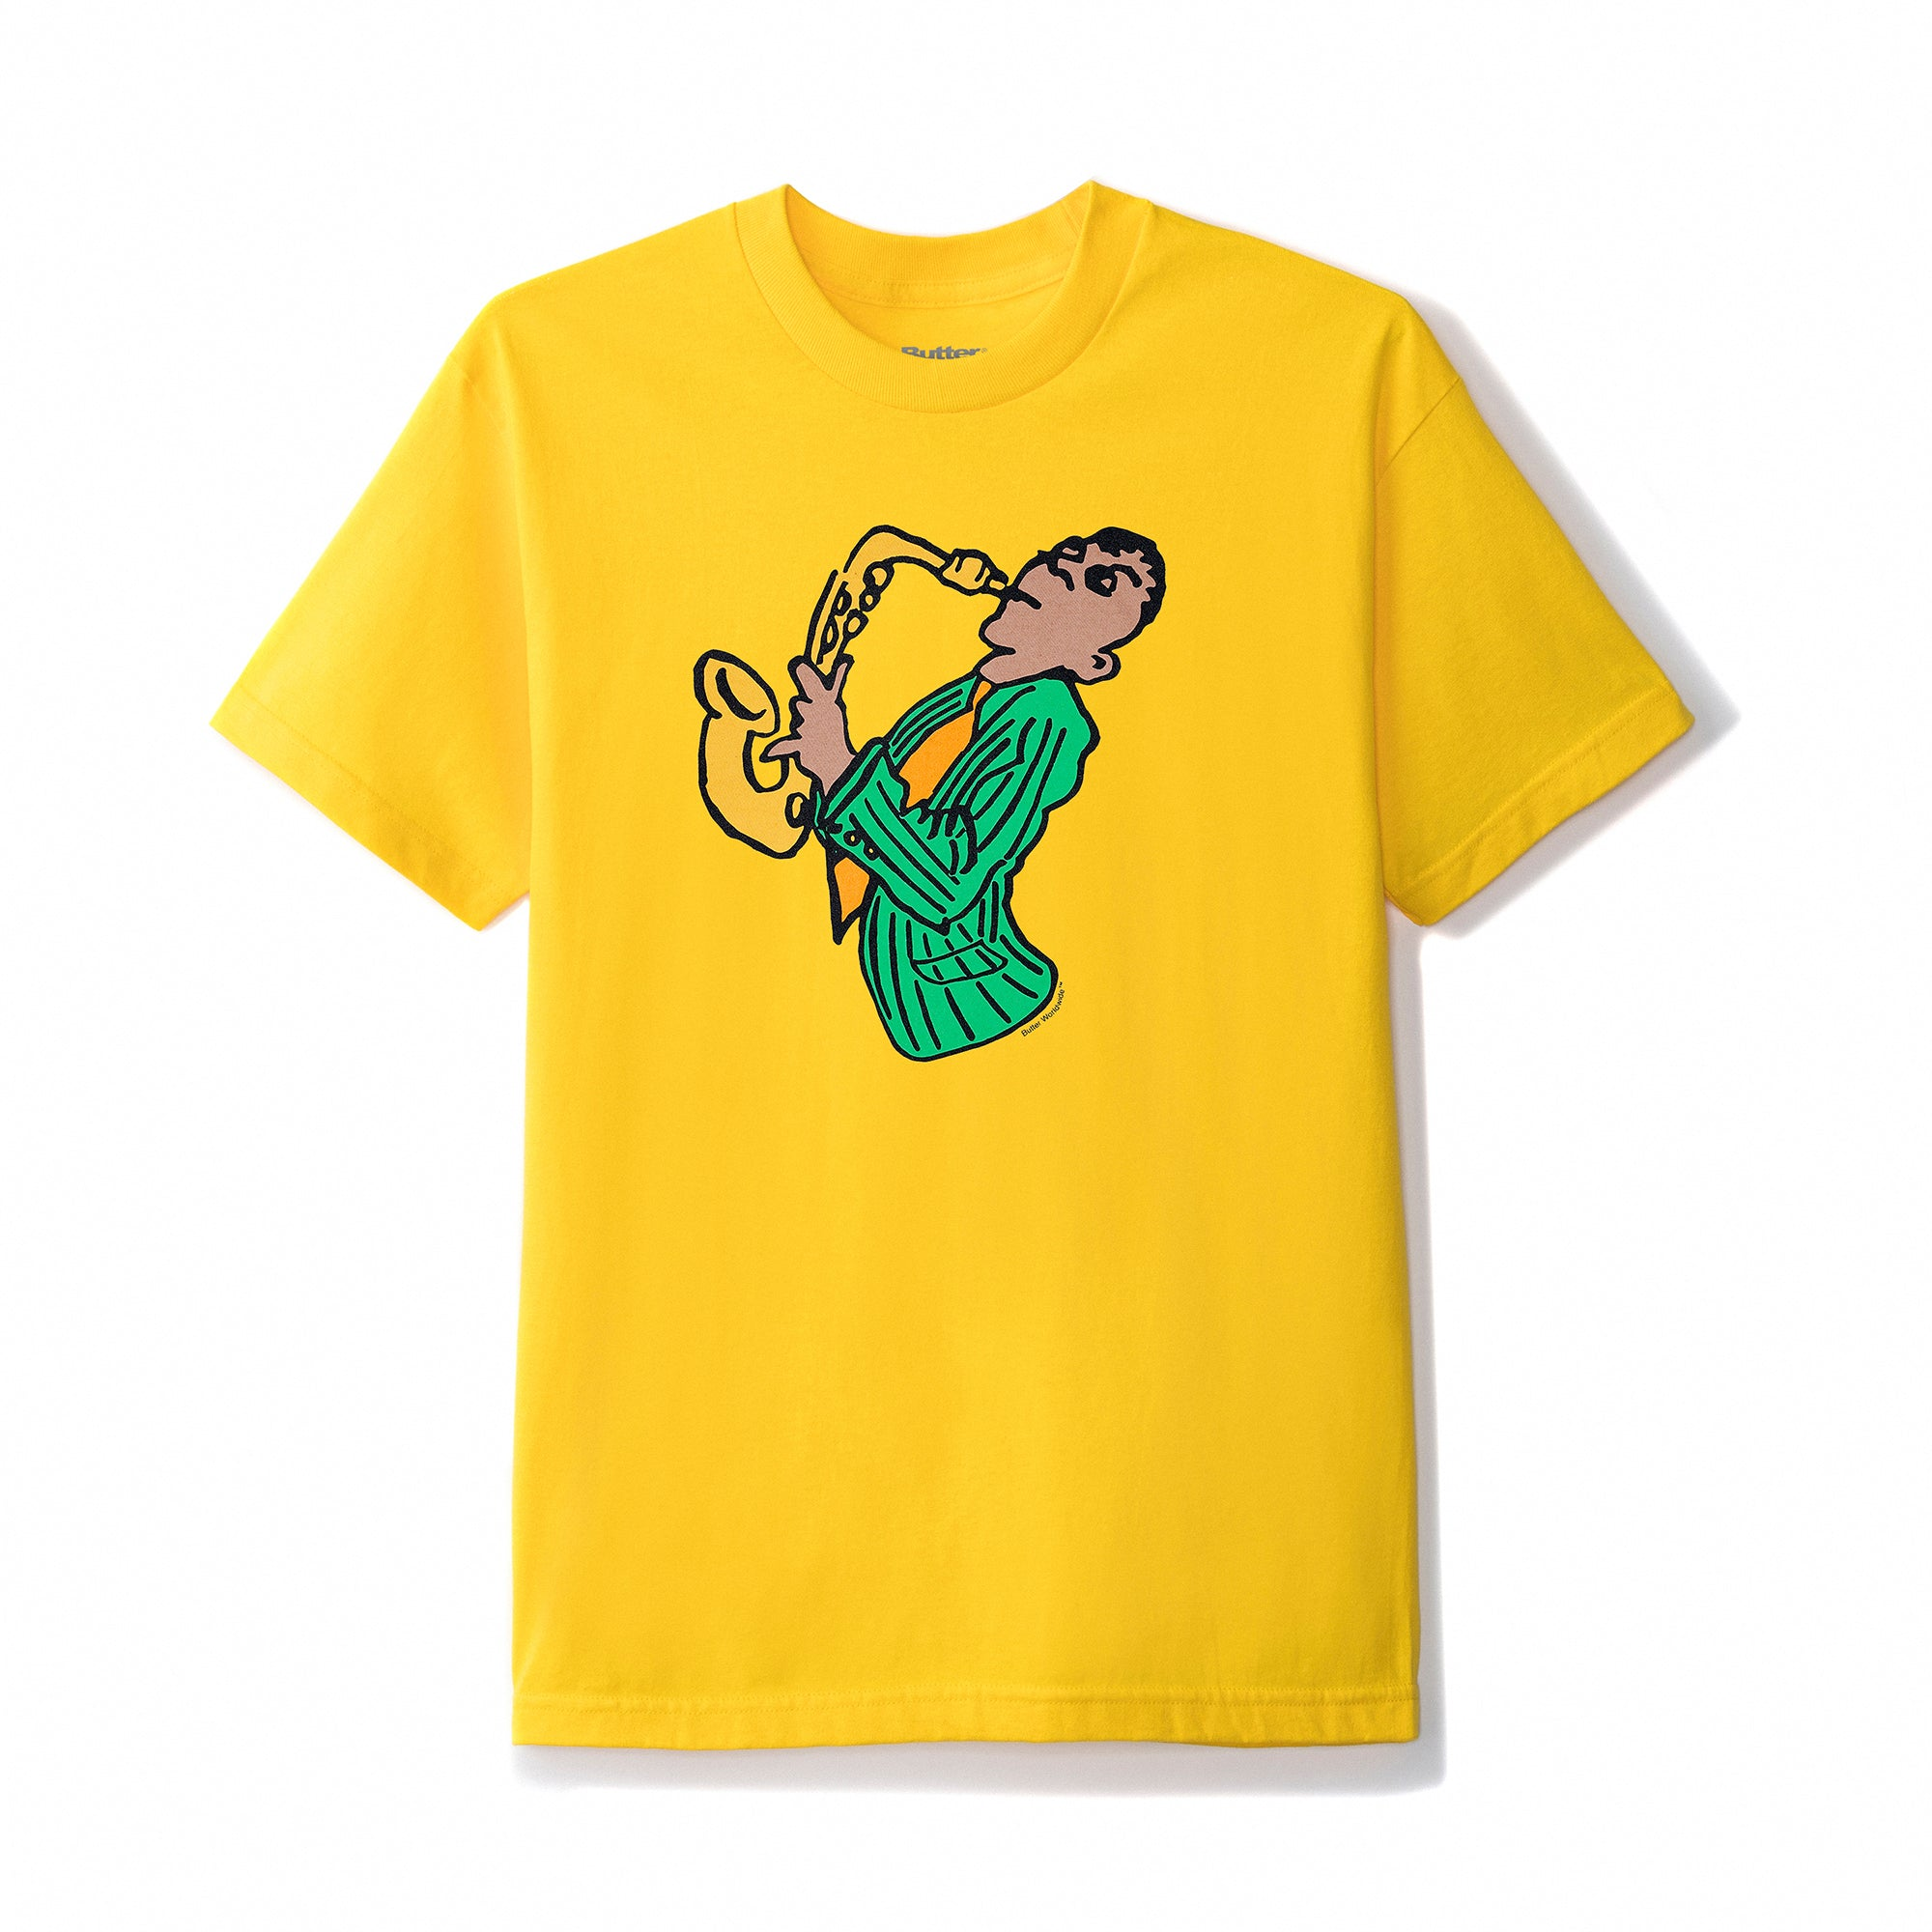 Butter Goods Sax Tee Product Photo #3